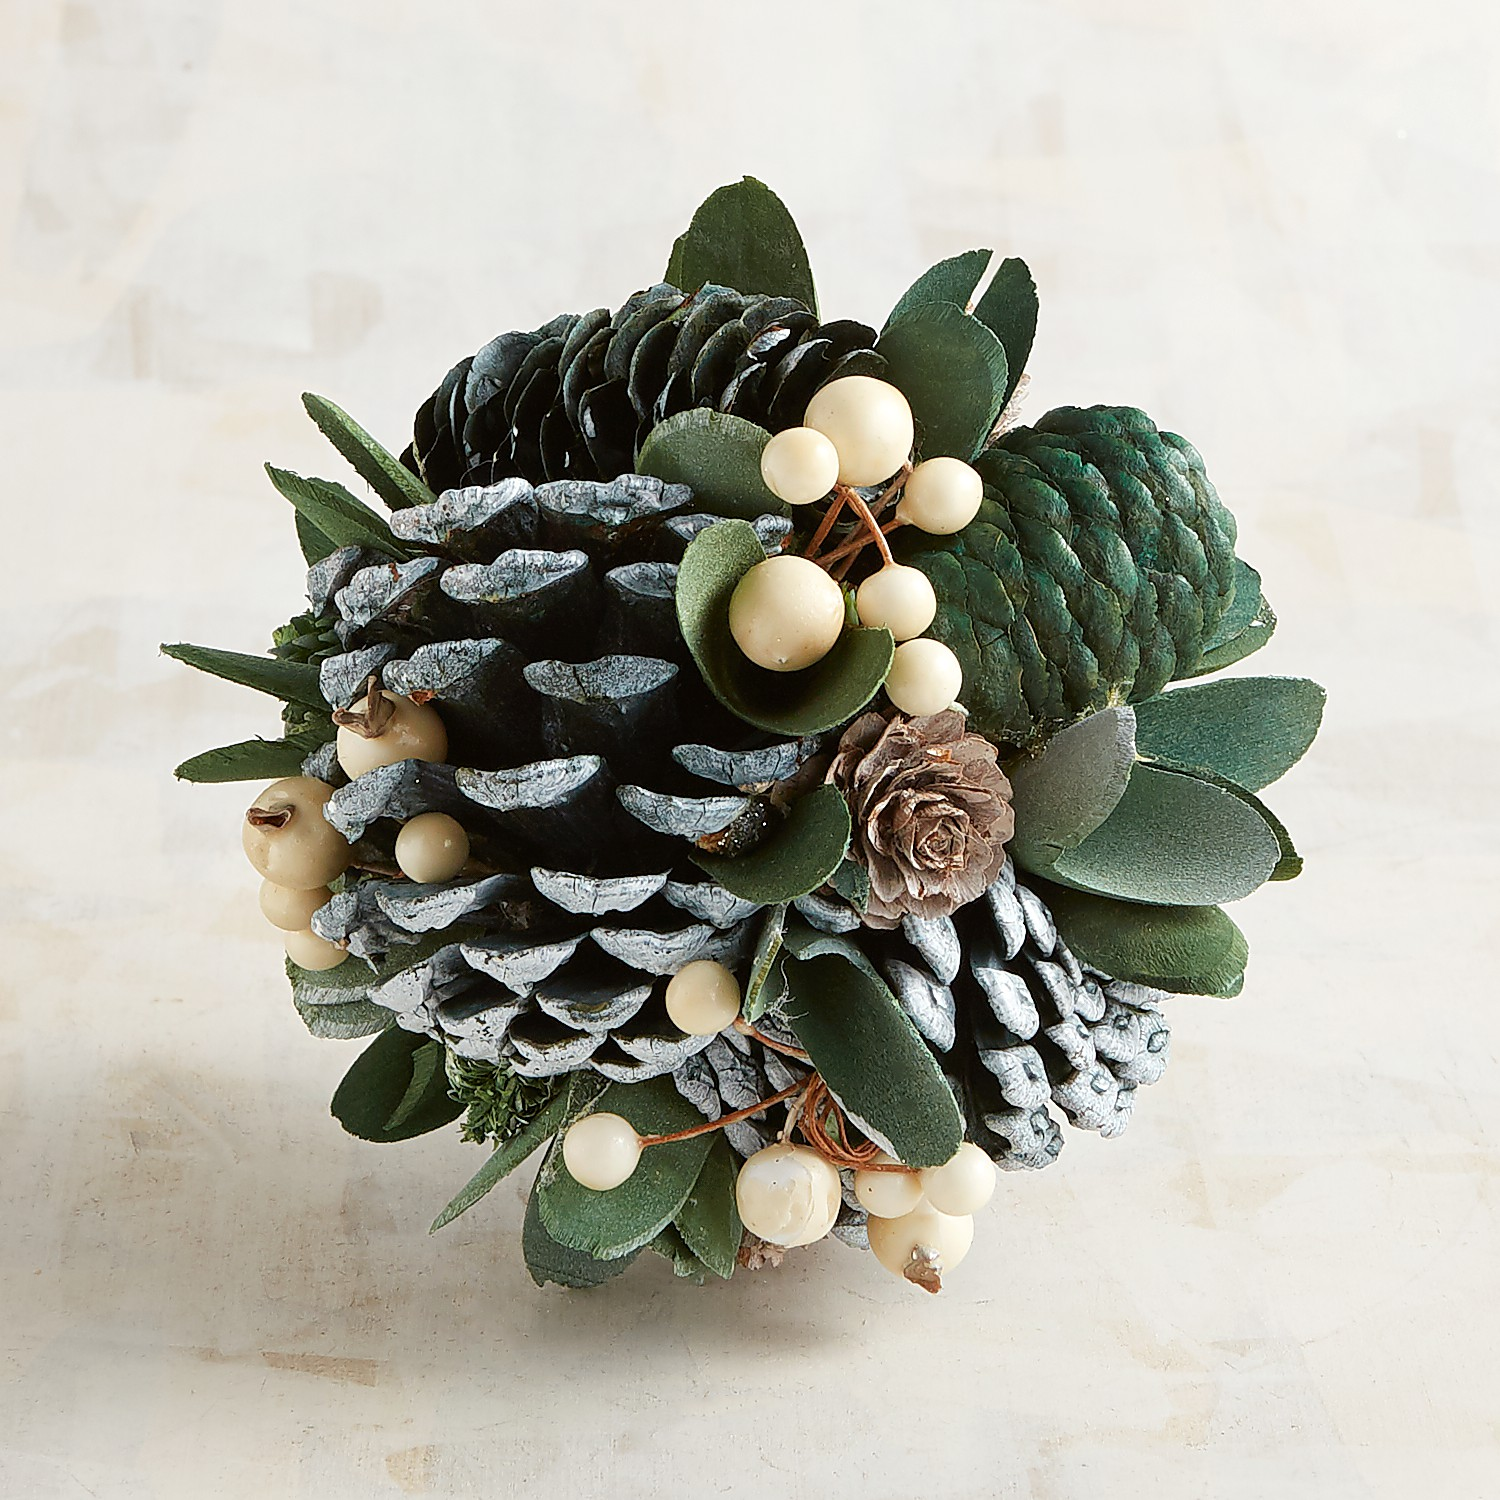 Green Pinecone Decorative Sphere